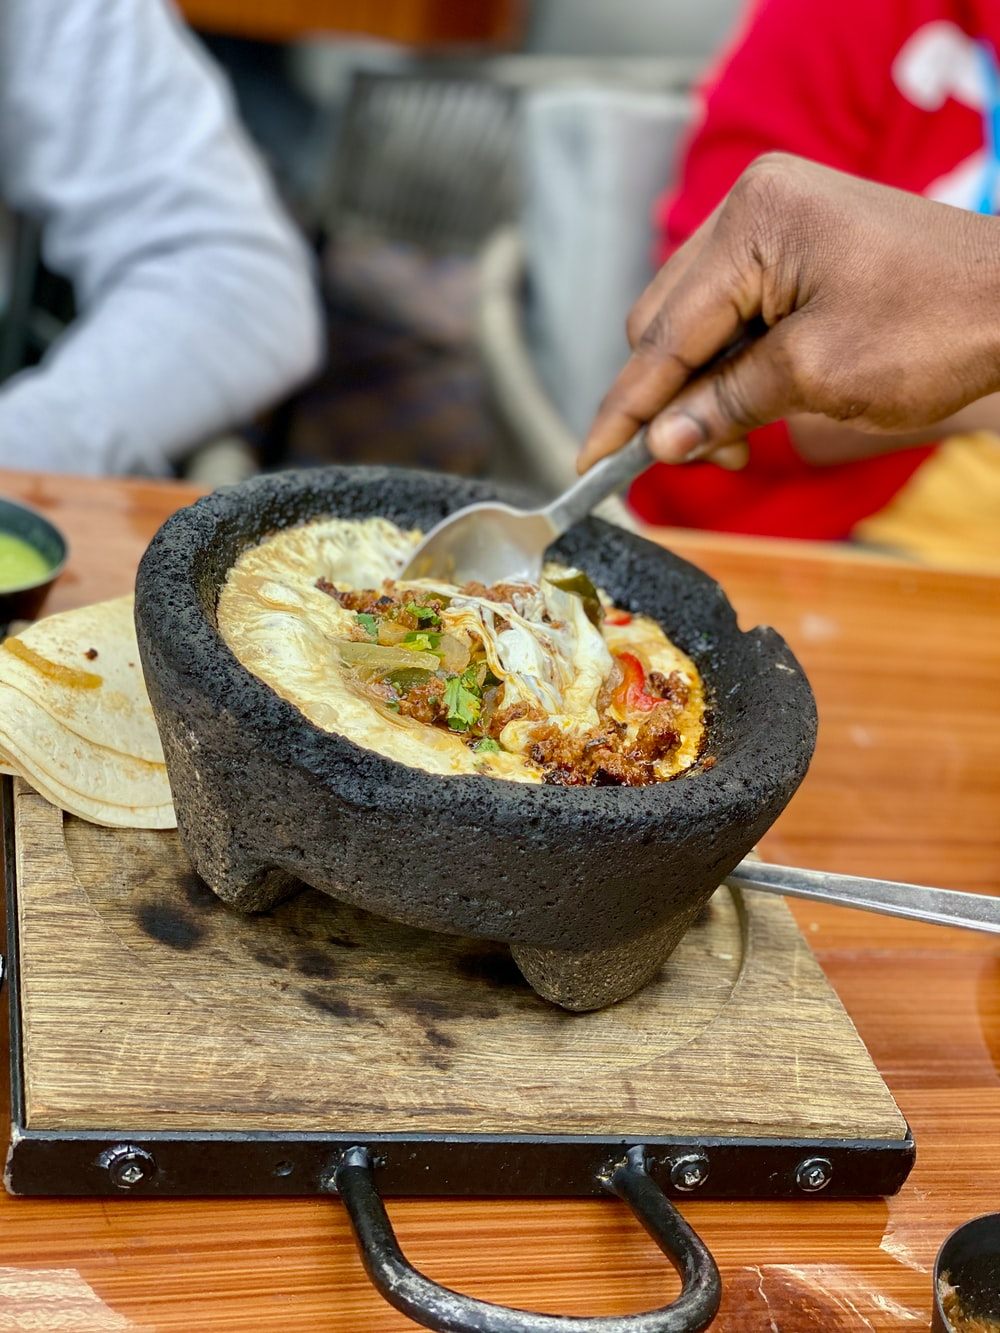 bowl of food on wooden surface